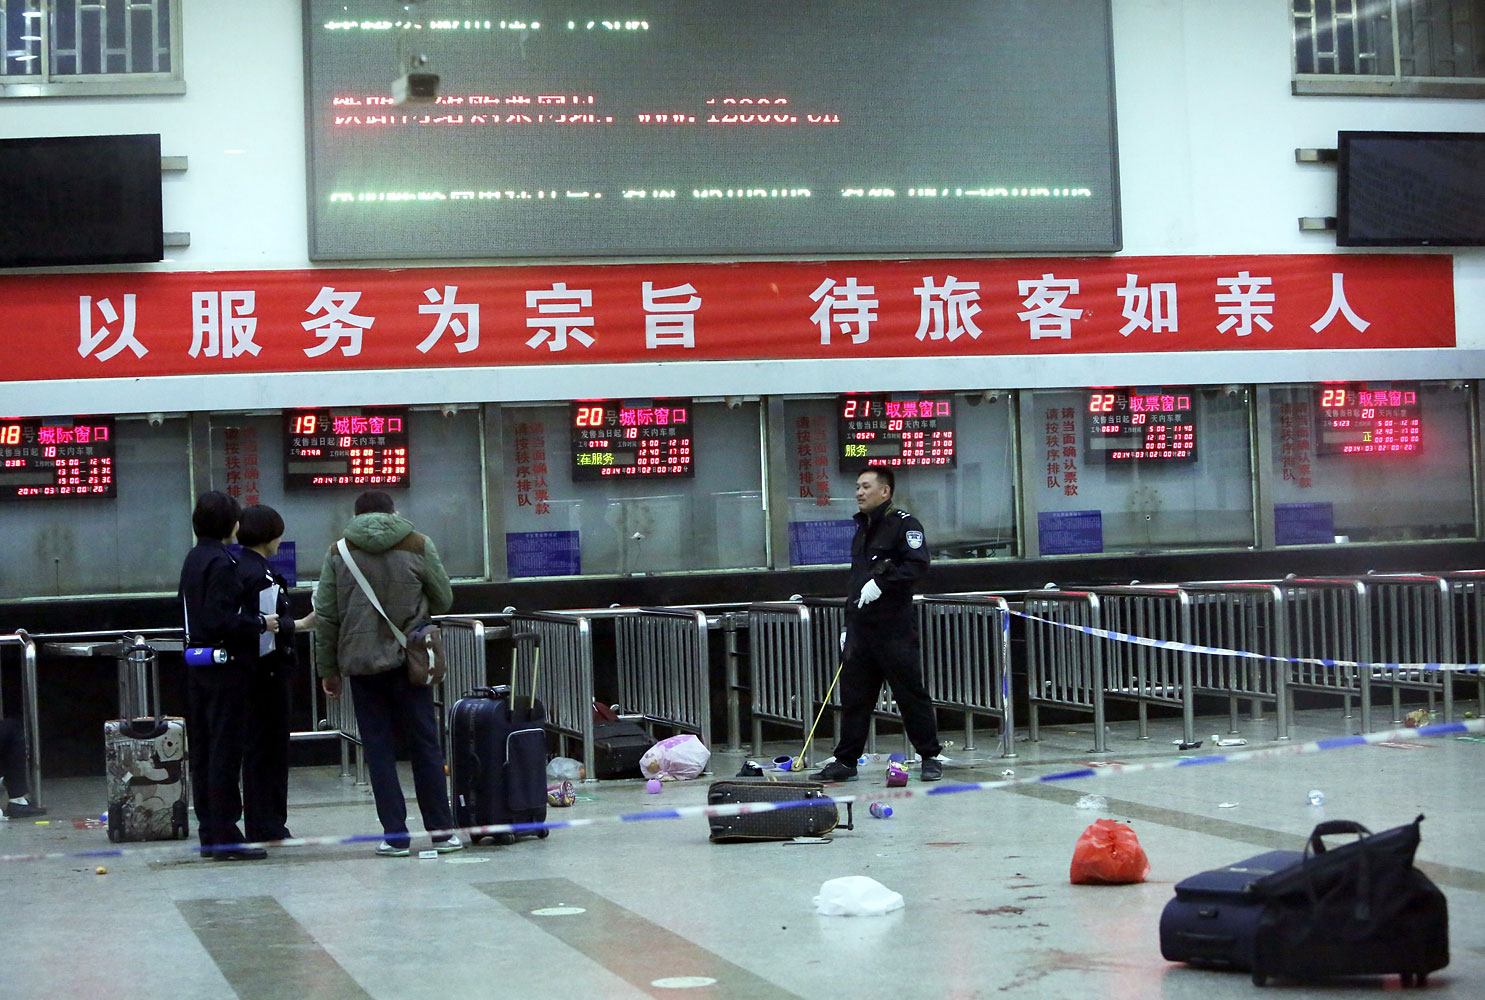 Chinese police investigators inspect the scene of an attack at the railway station in Kunming, southwest China's Yunnan province, on March 2, 2014